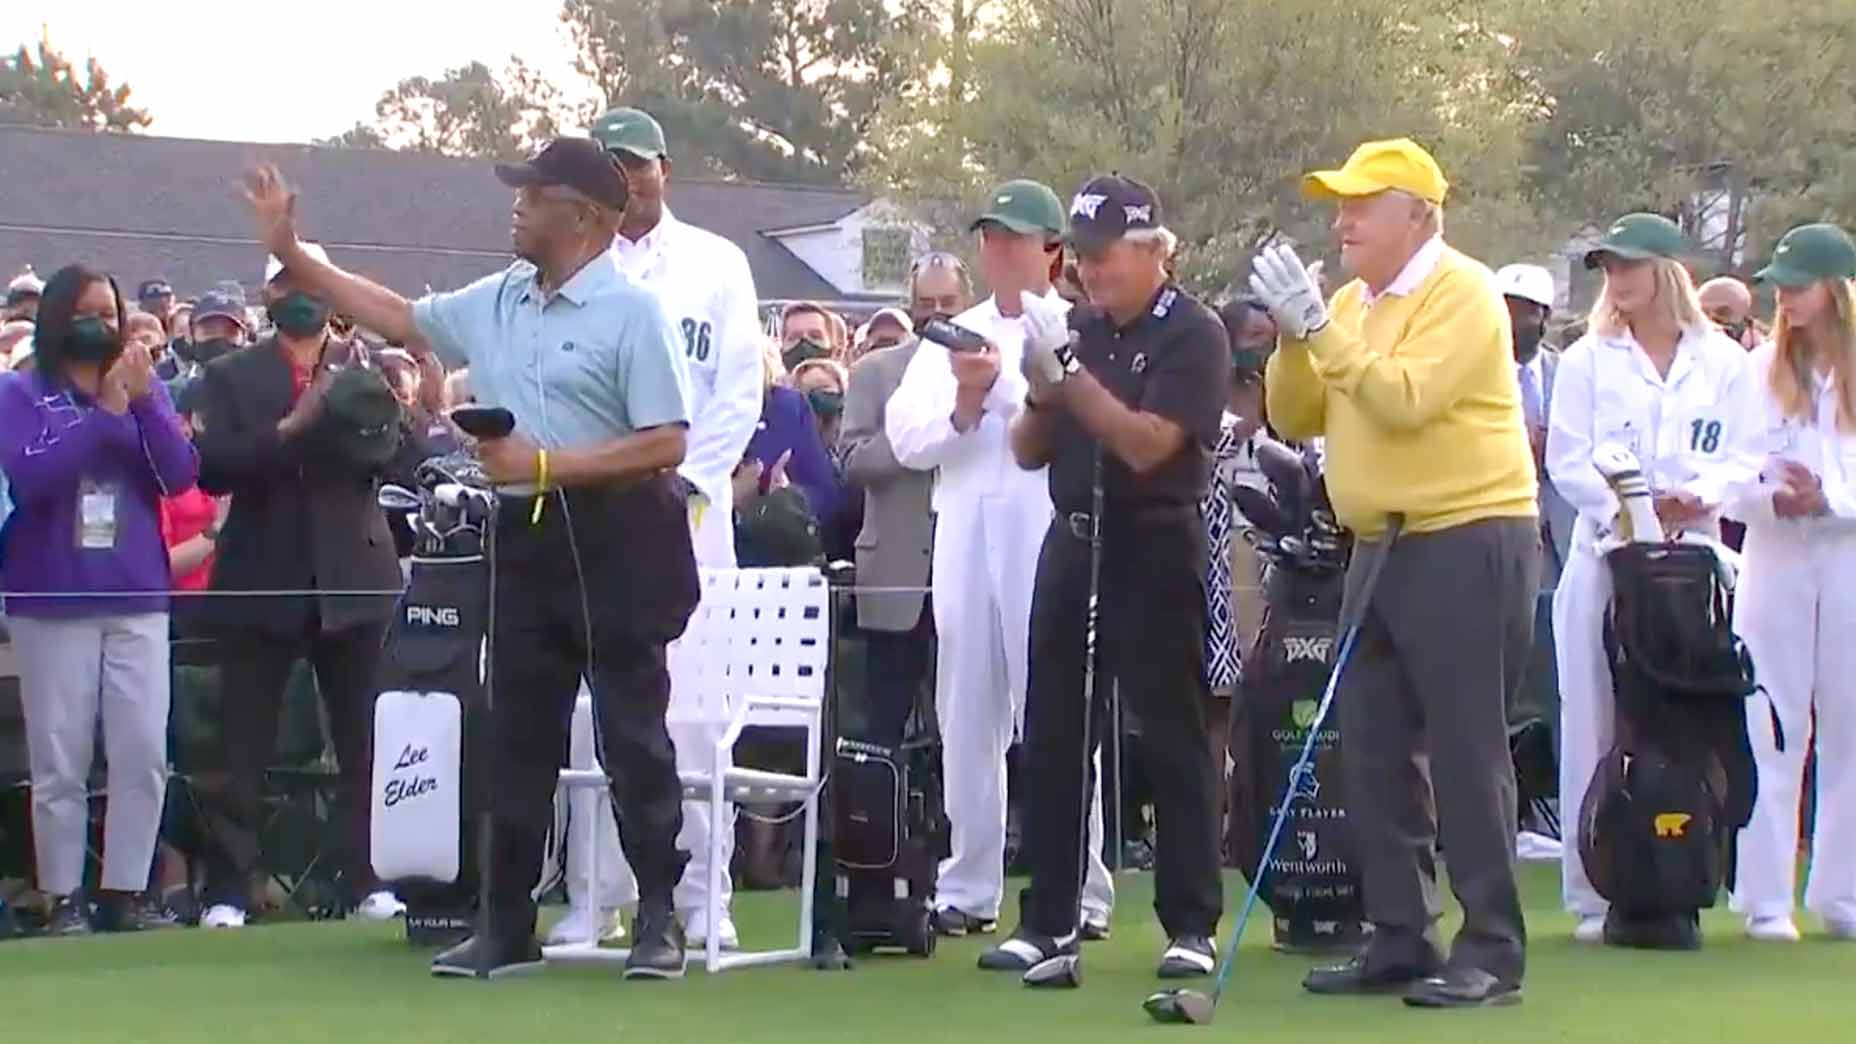 WATCH: Nicklaus, Player, Elder kick off Masters as ...